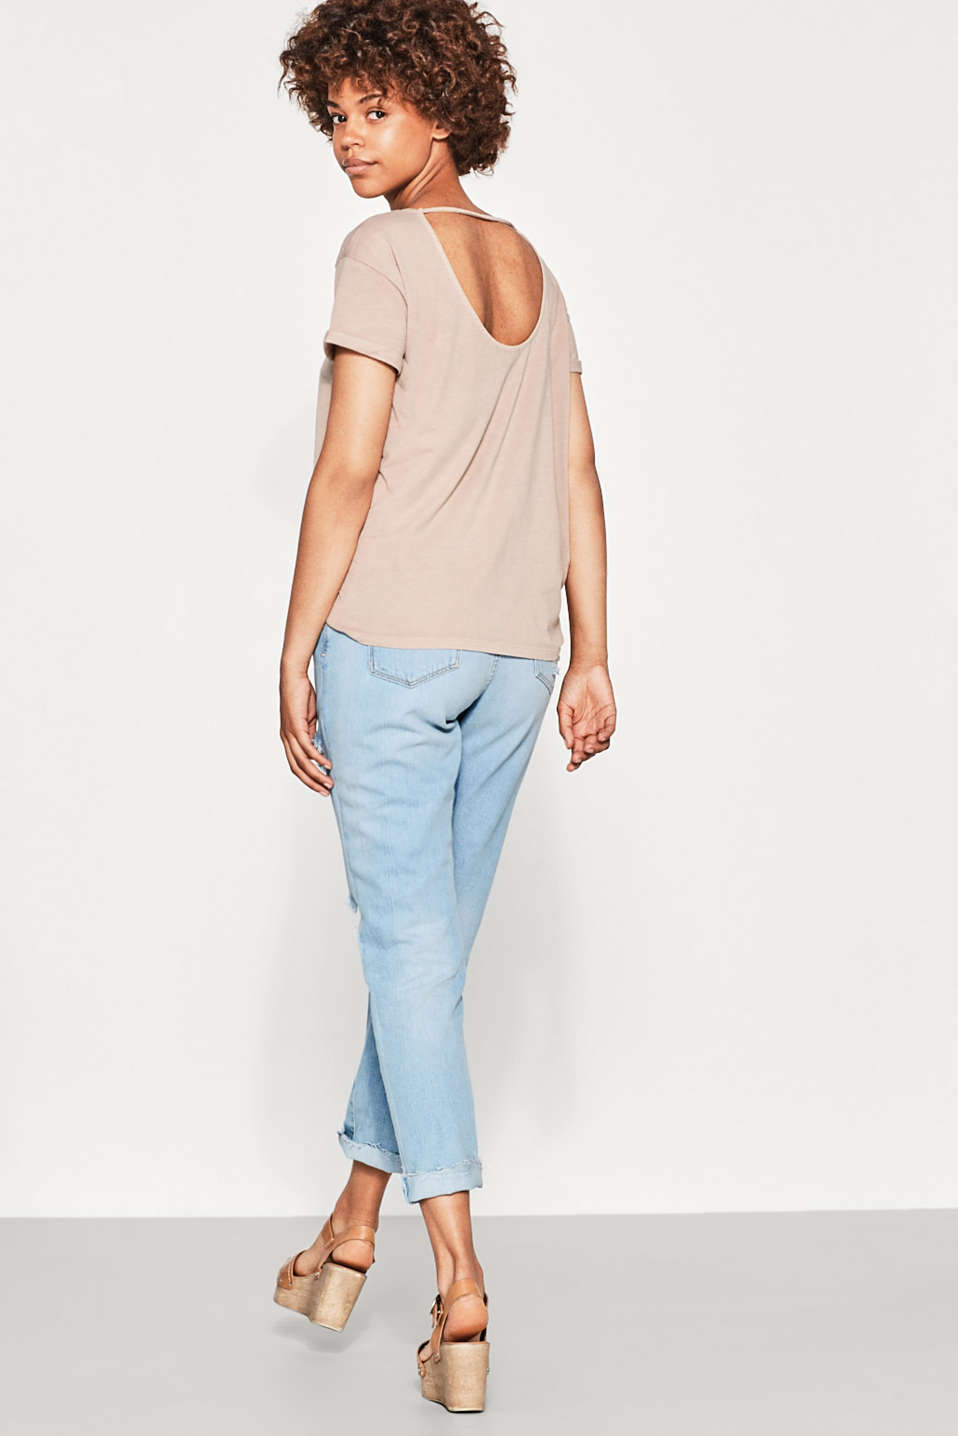 Casual T-shirt with scoop back neckline